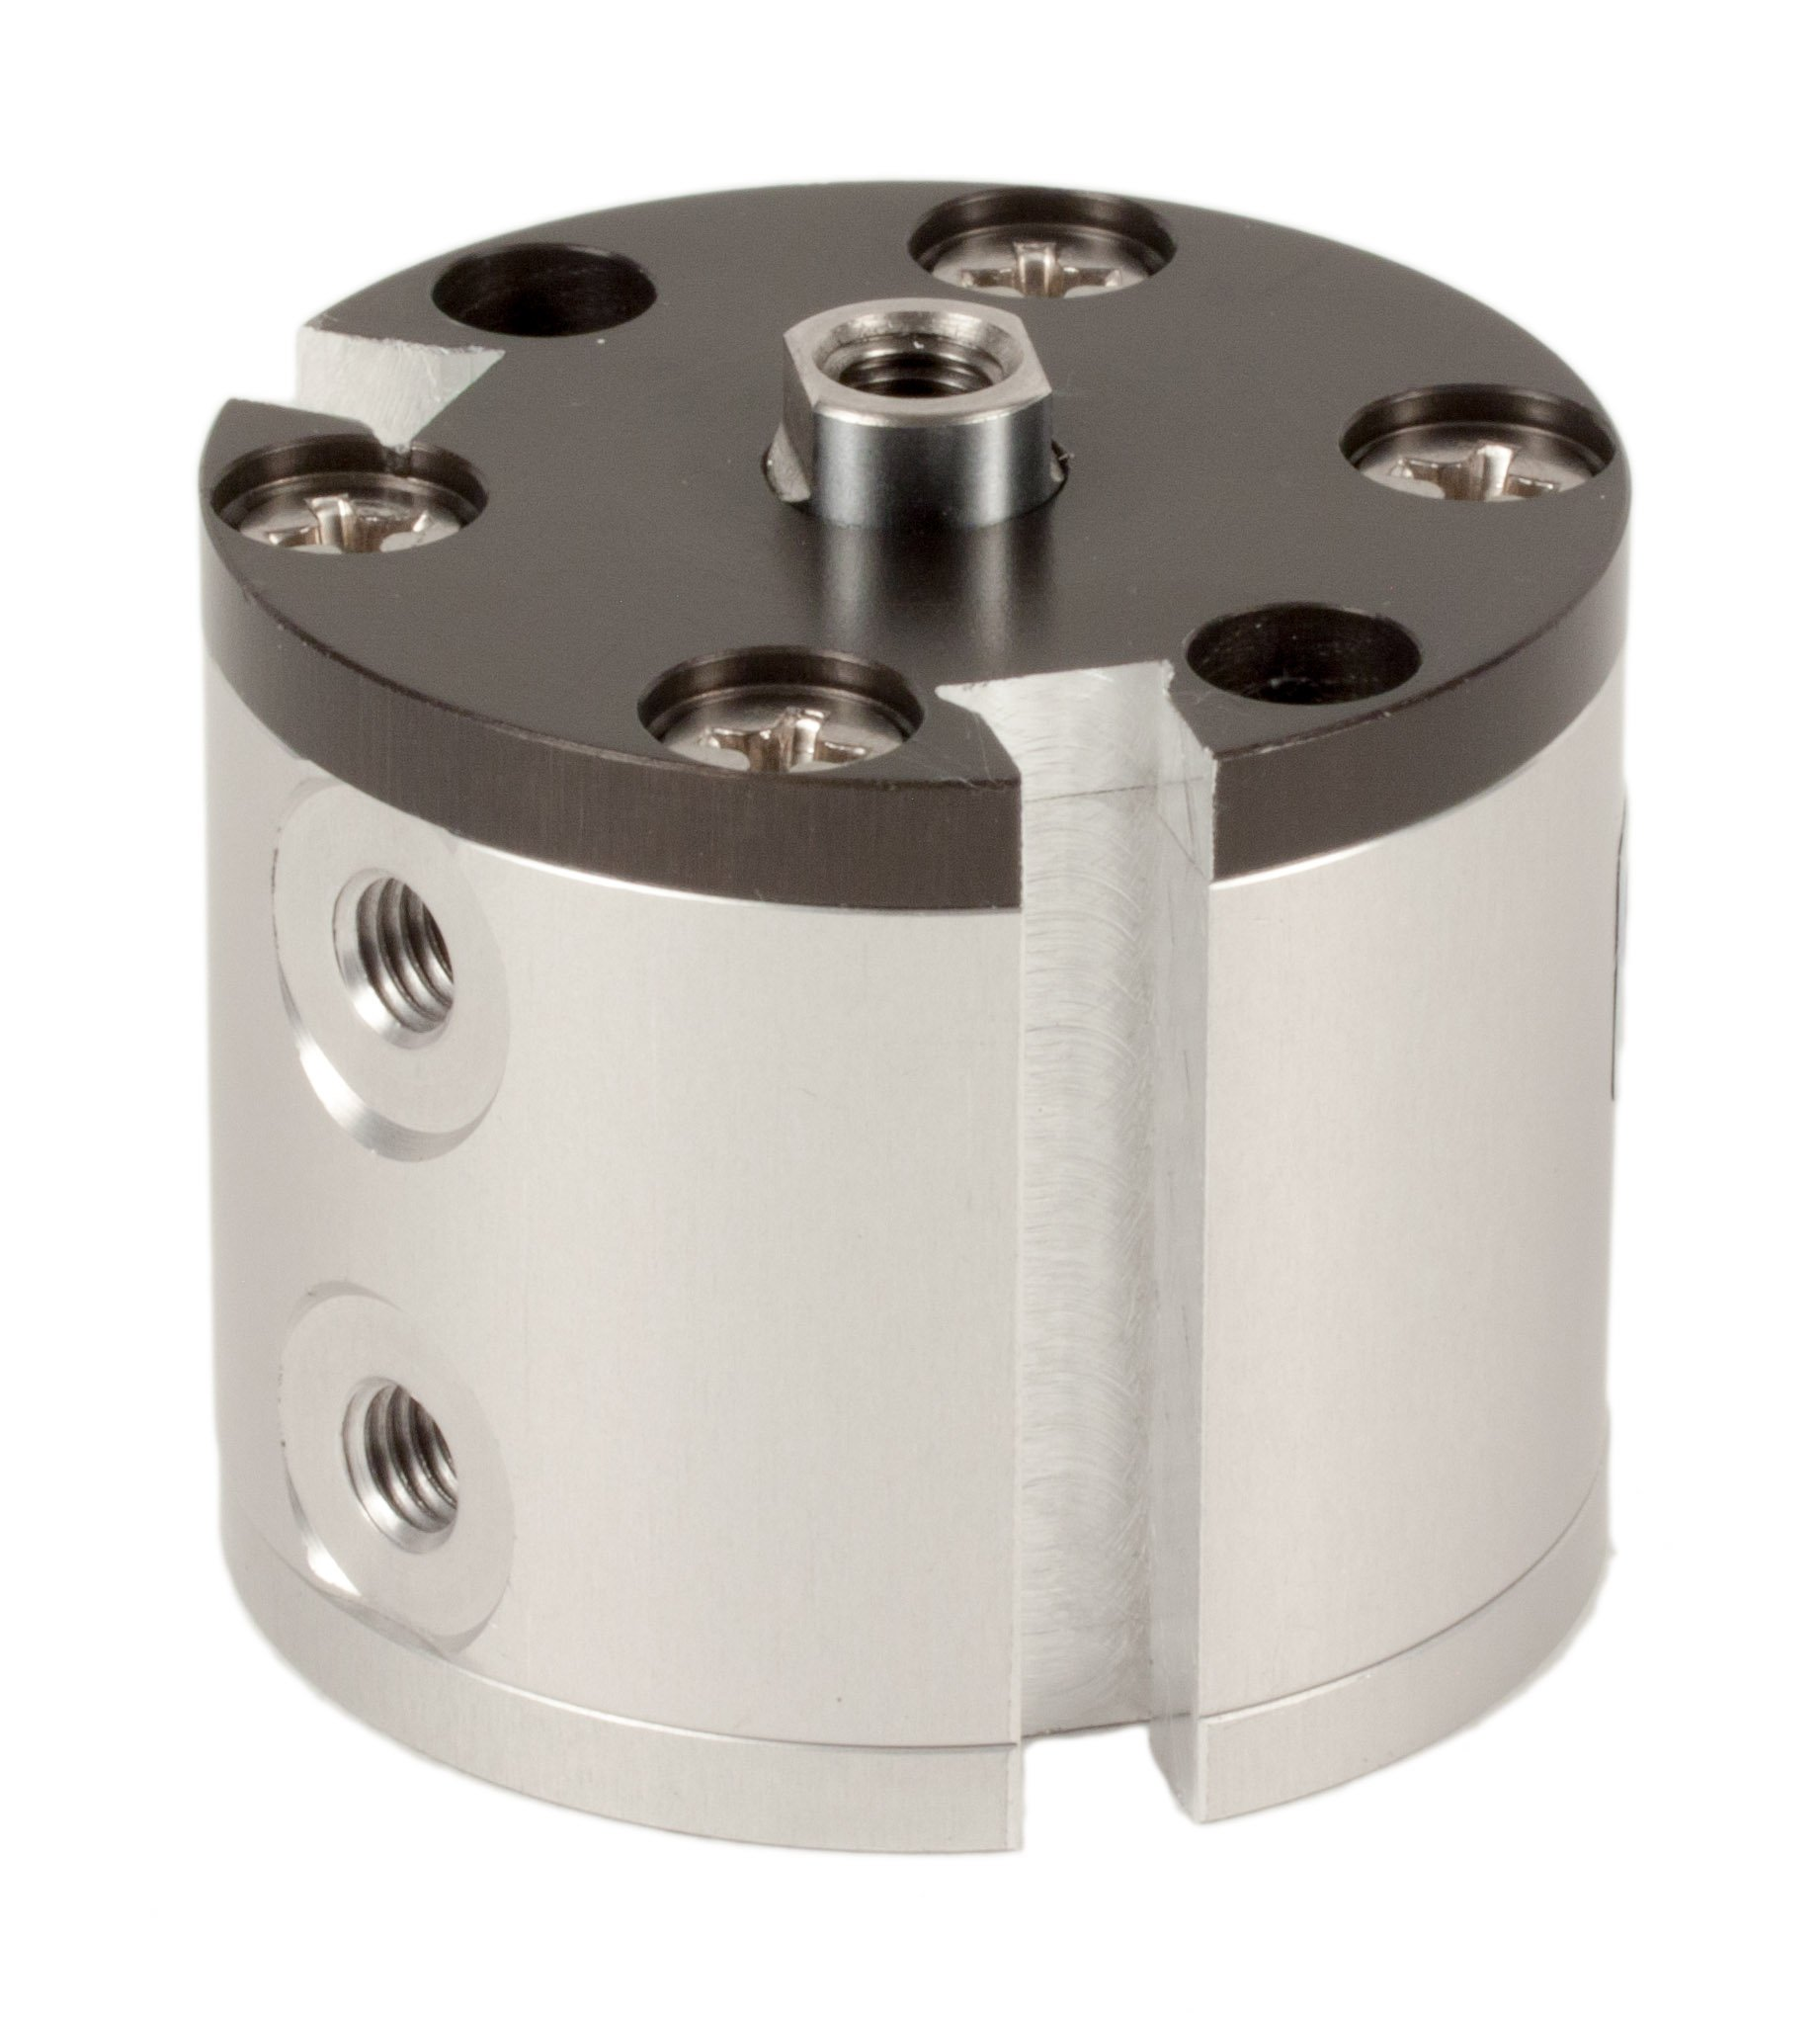 Fabco-Air F-7-X-E Original Pancake Cylinder, Double Acting, Maximum Pressure of 250 PSI, Switch Ready with Magnet, 3/4'' Bore Diameter x 5/8'' Stroke